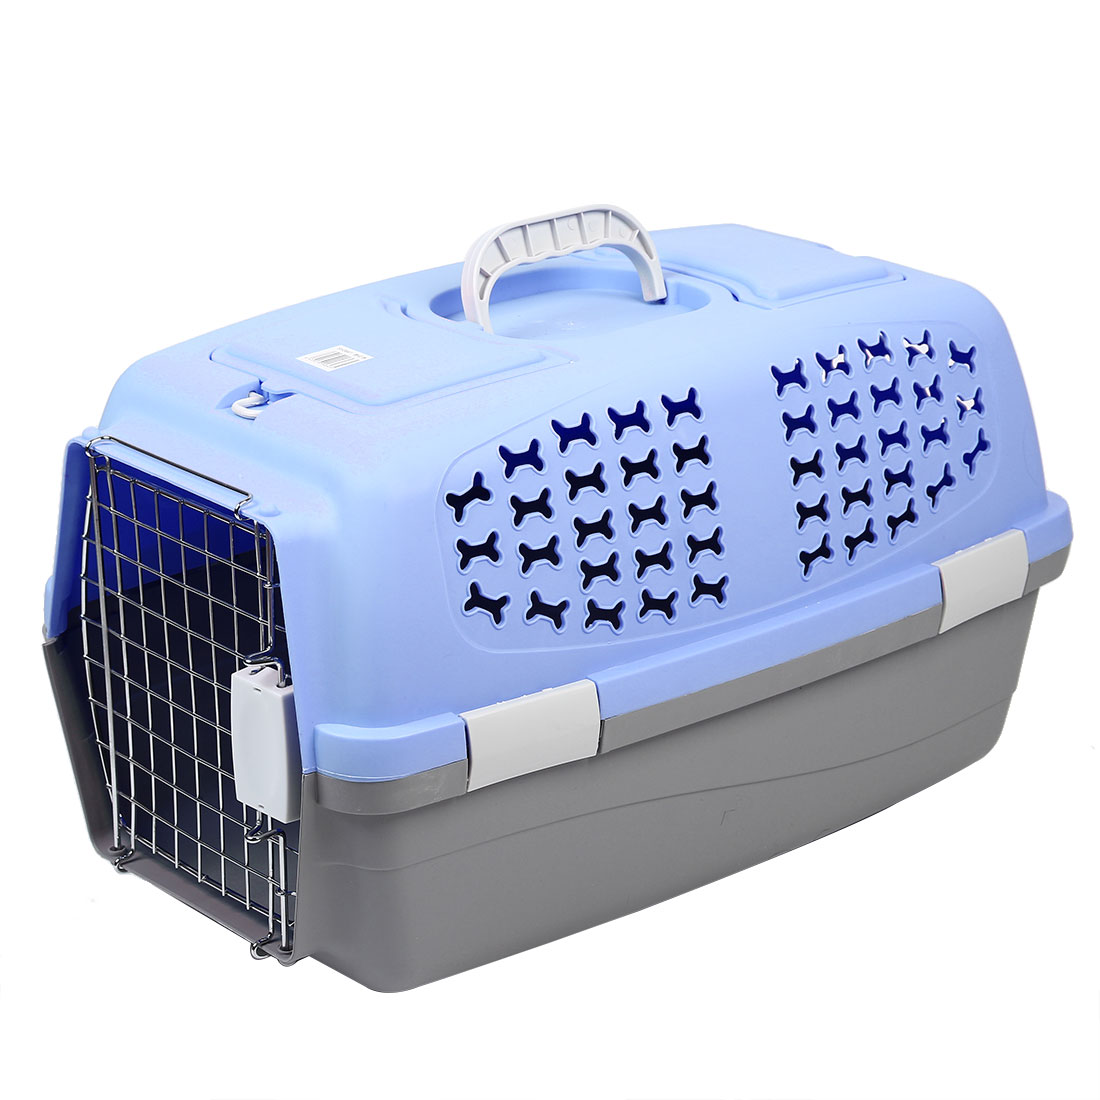 Outdoors Travel Plastic Transport Cages Airways Box Pet Carrier Blue 59x38x38cm